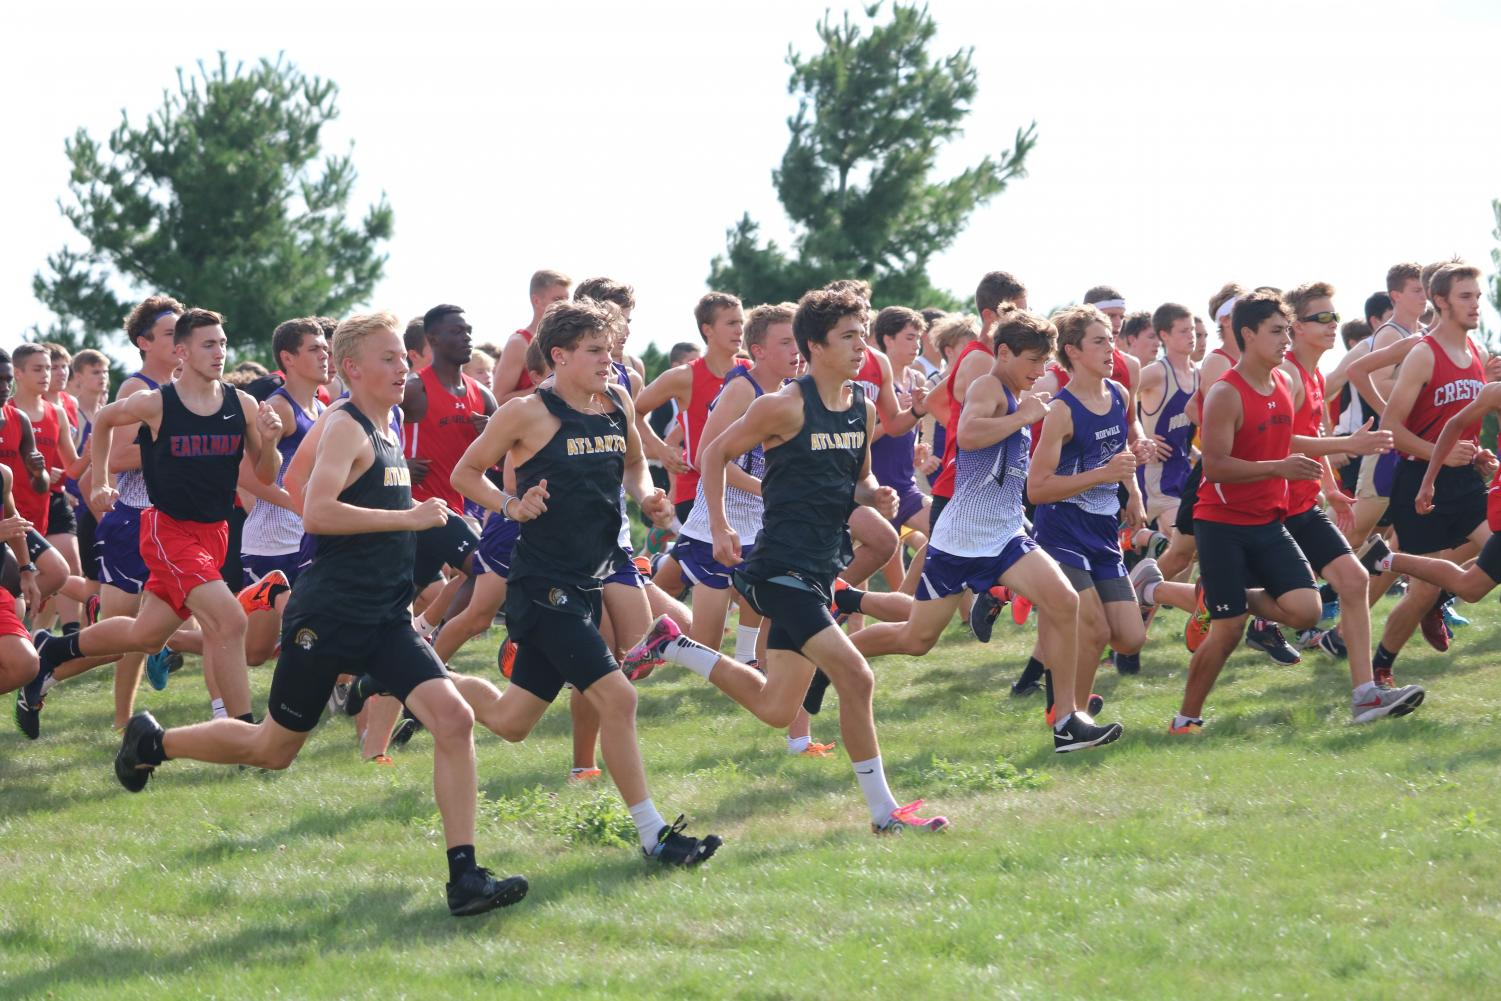 ON YOUR MARK - Runners take off at the start line at DCG. Only varsity members ran for the Trojans at this meet.